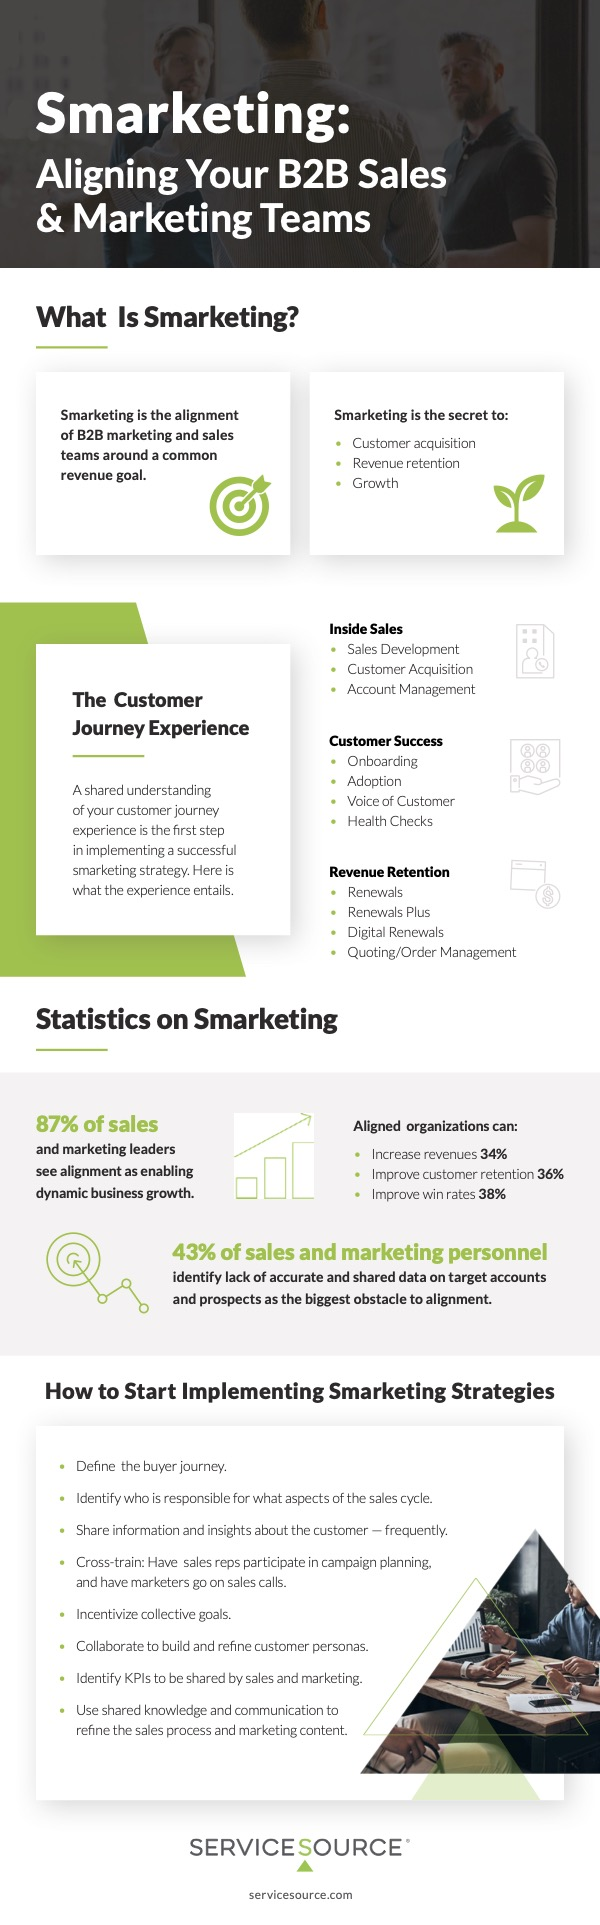 Smarketing is aligning your B2B sales and marketing teams infographic